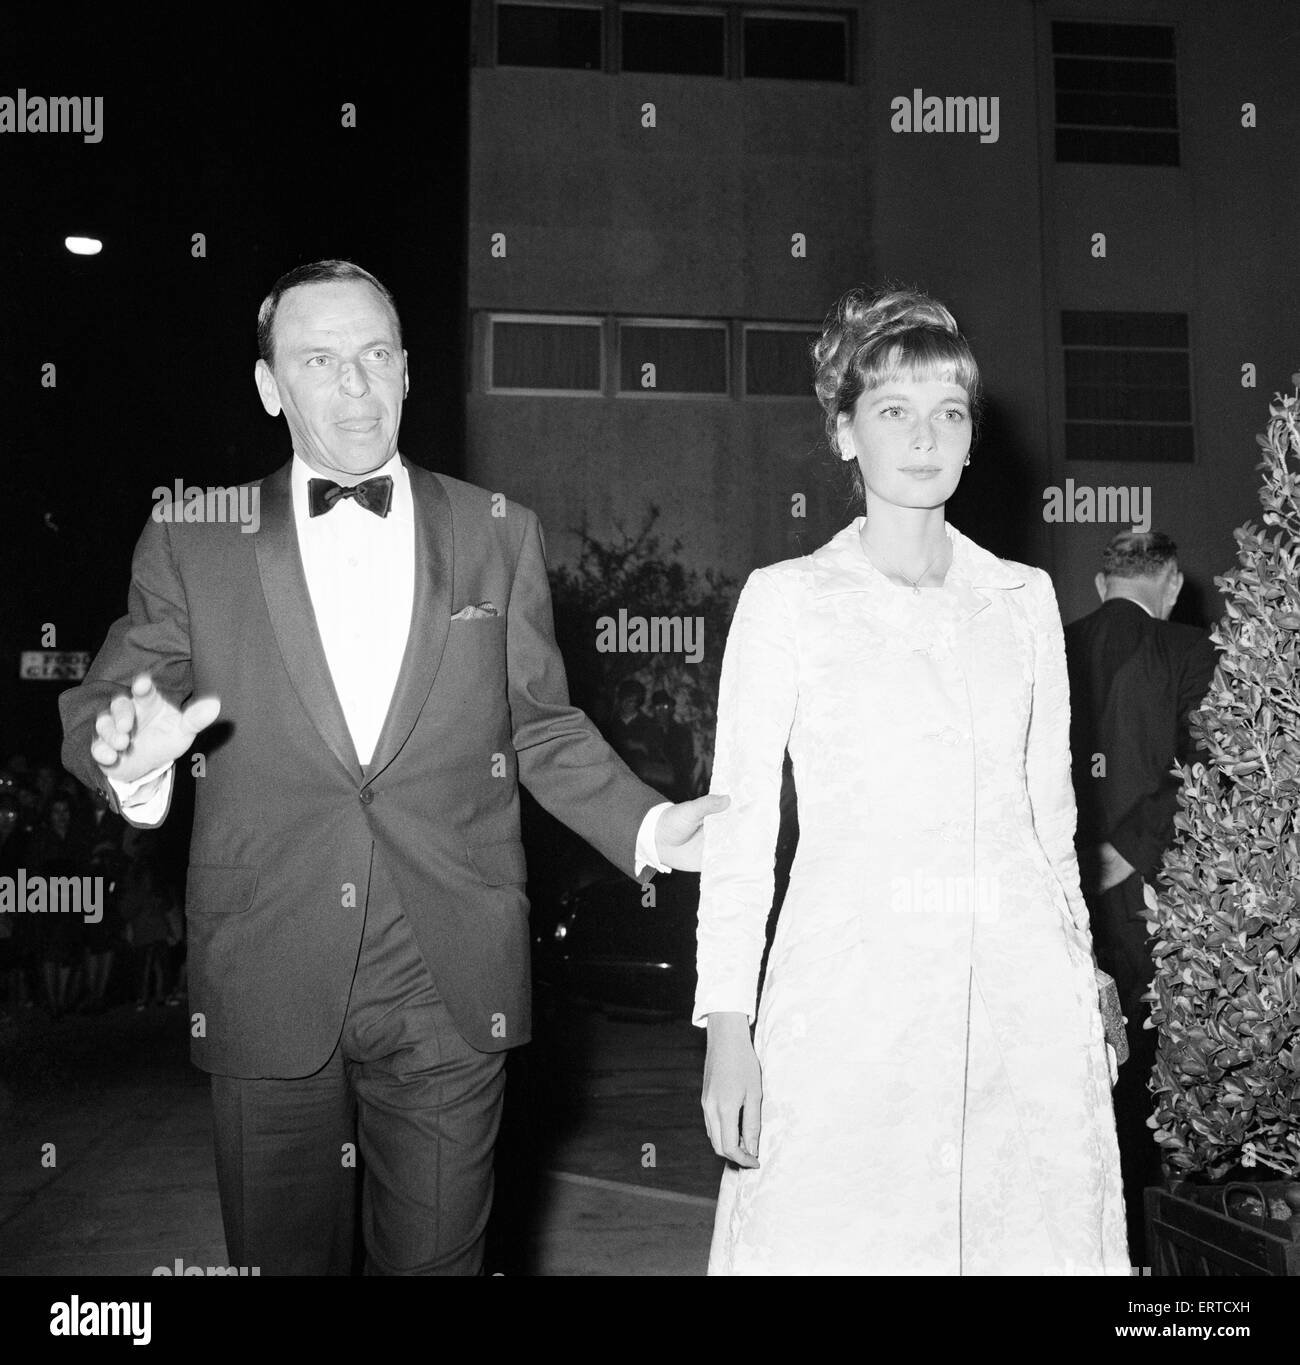 Frank Sinatra and Mia Farrow attend celebrity dinner party for guests of honour, Princess Margaret and the Earl - Stock Image